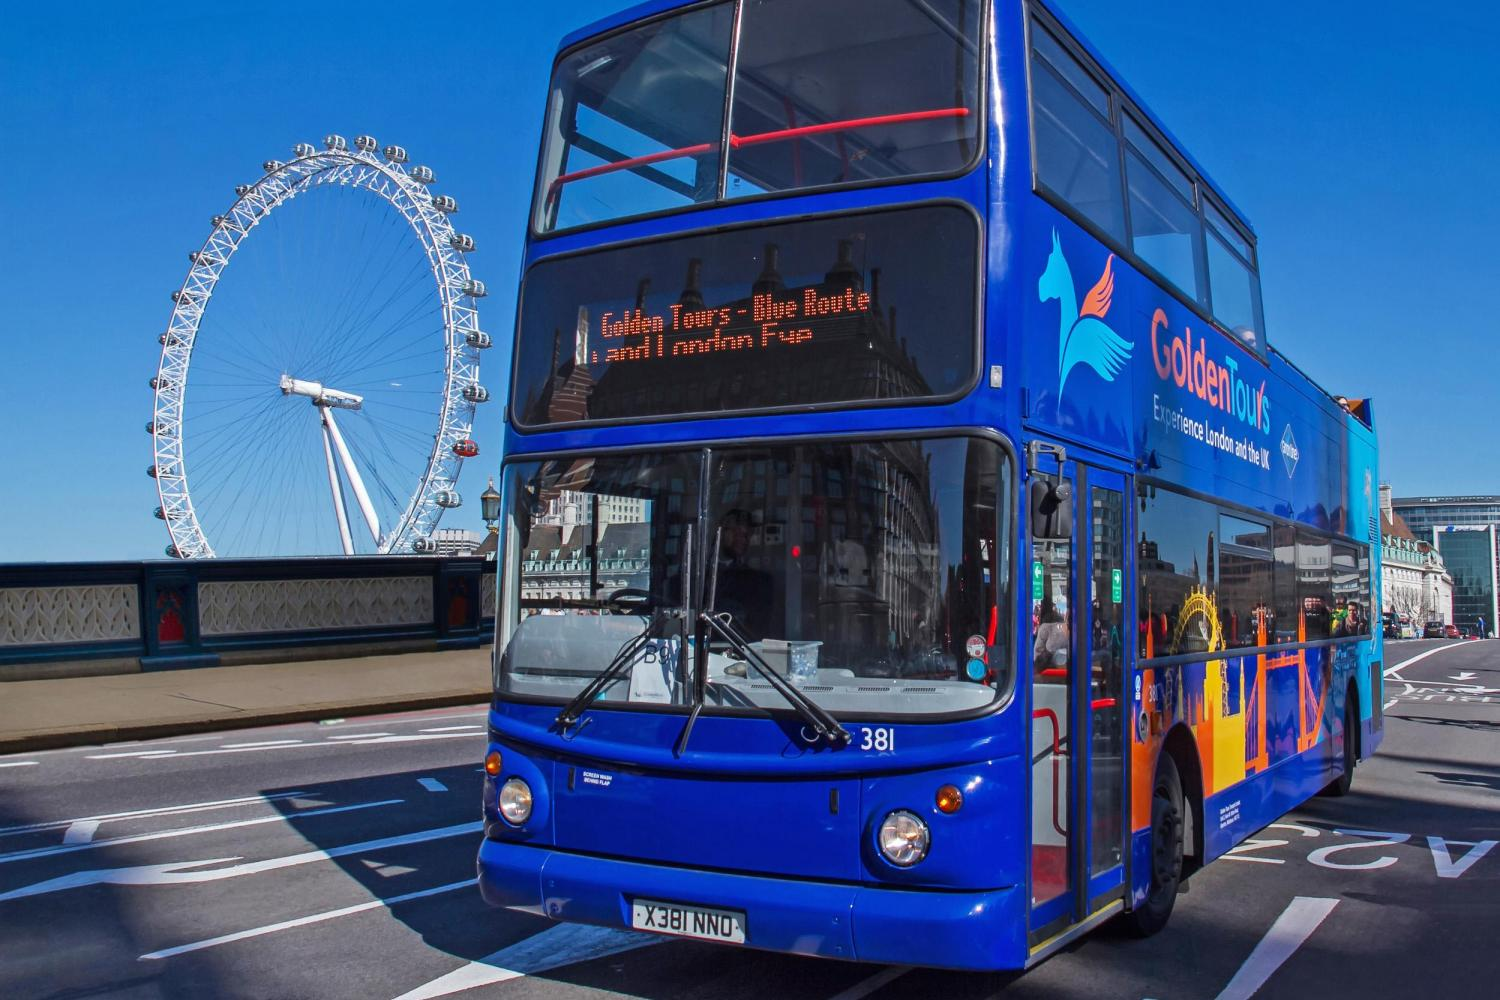 Hop on Hop off Bus Tour - things to do in London